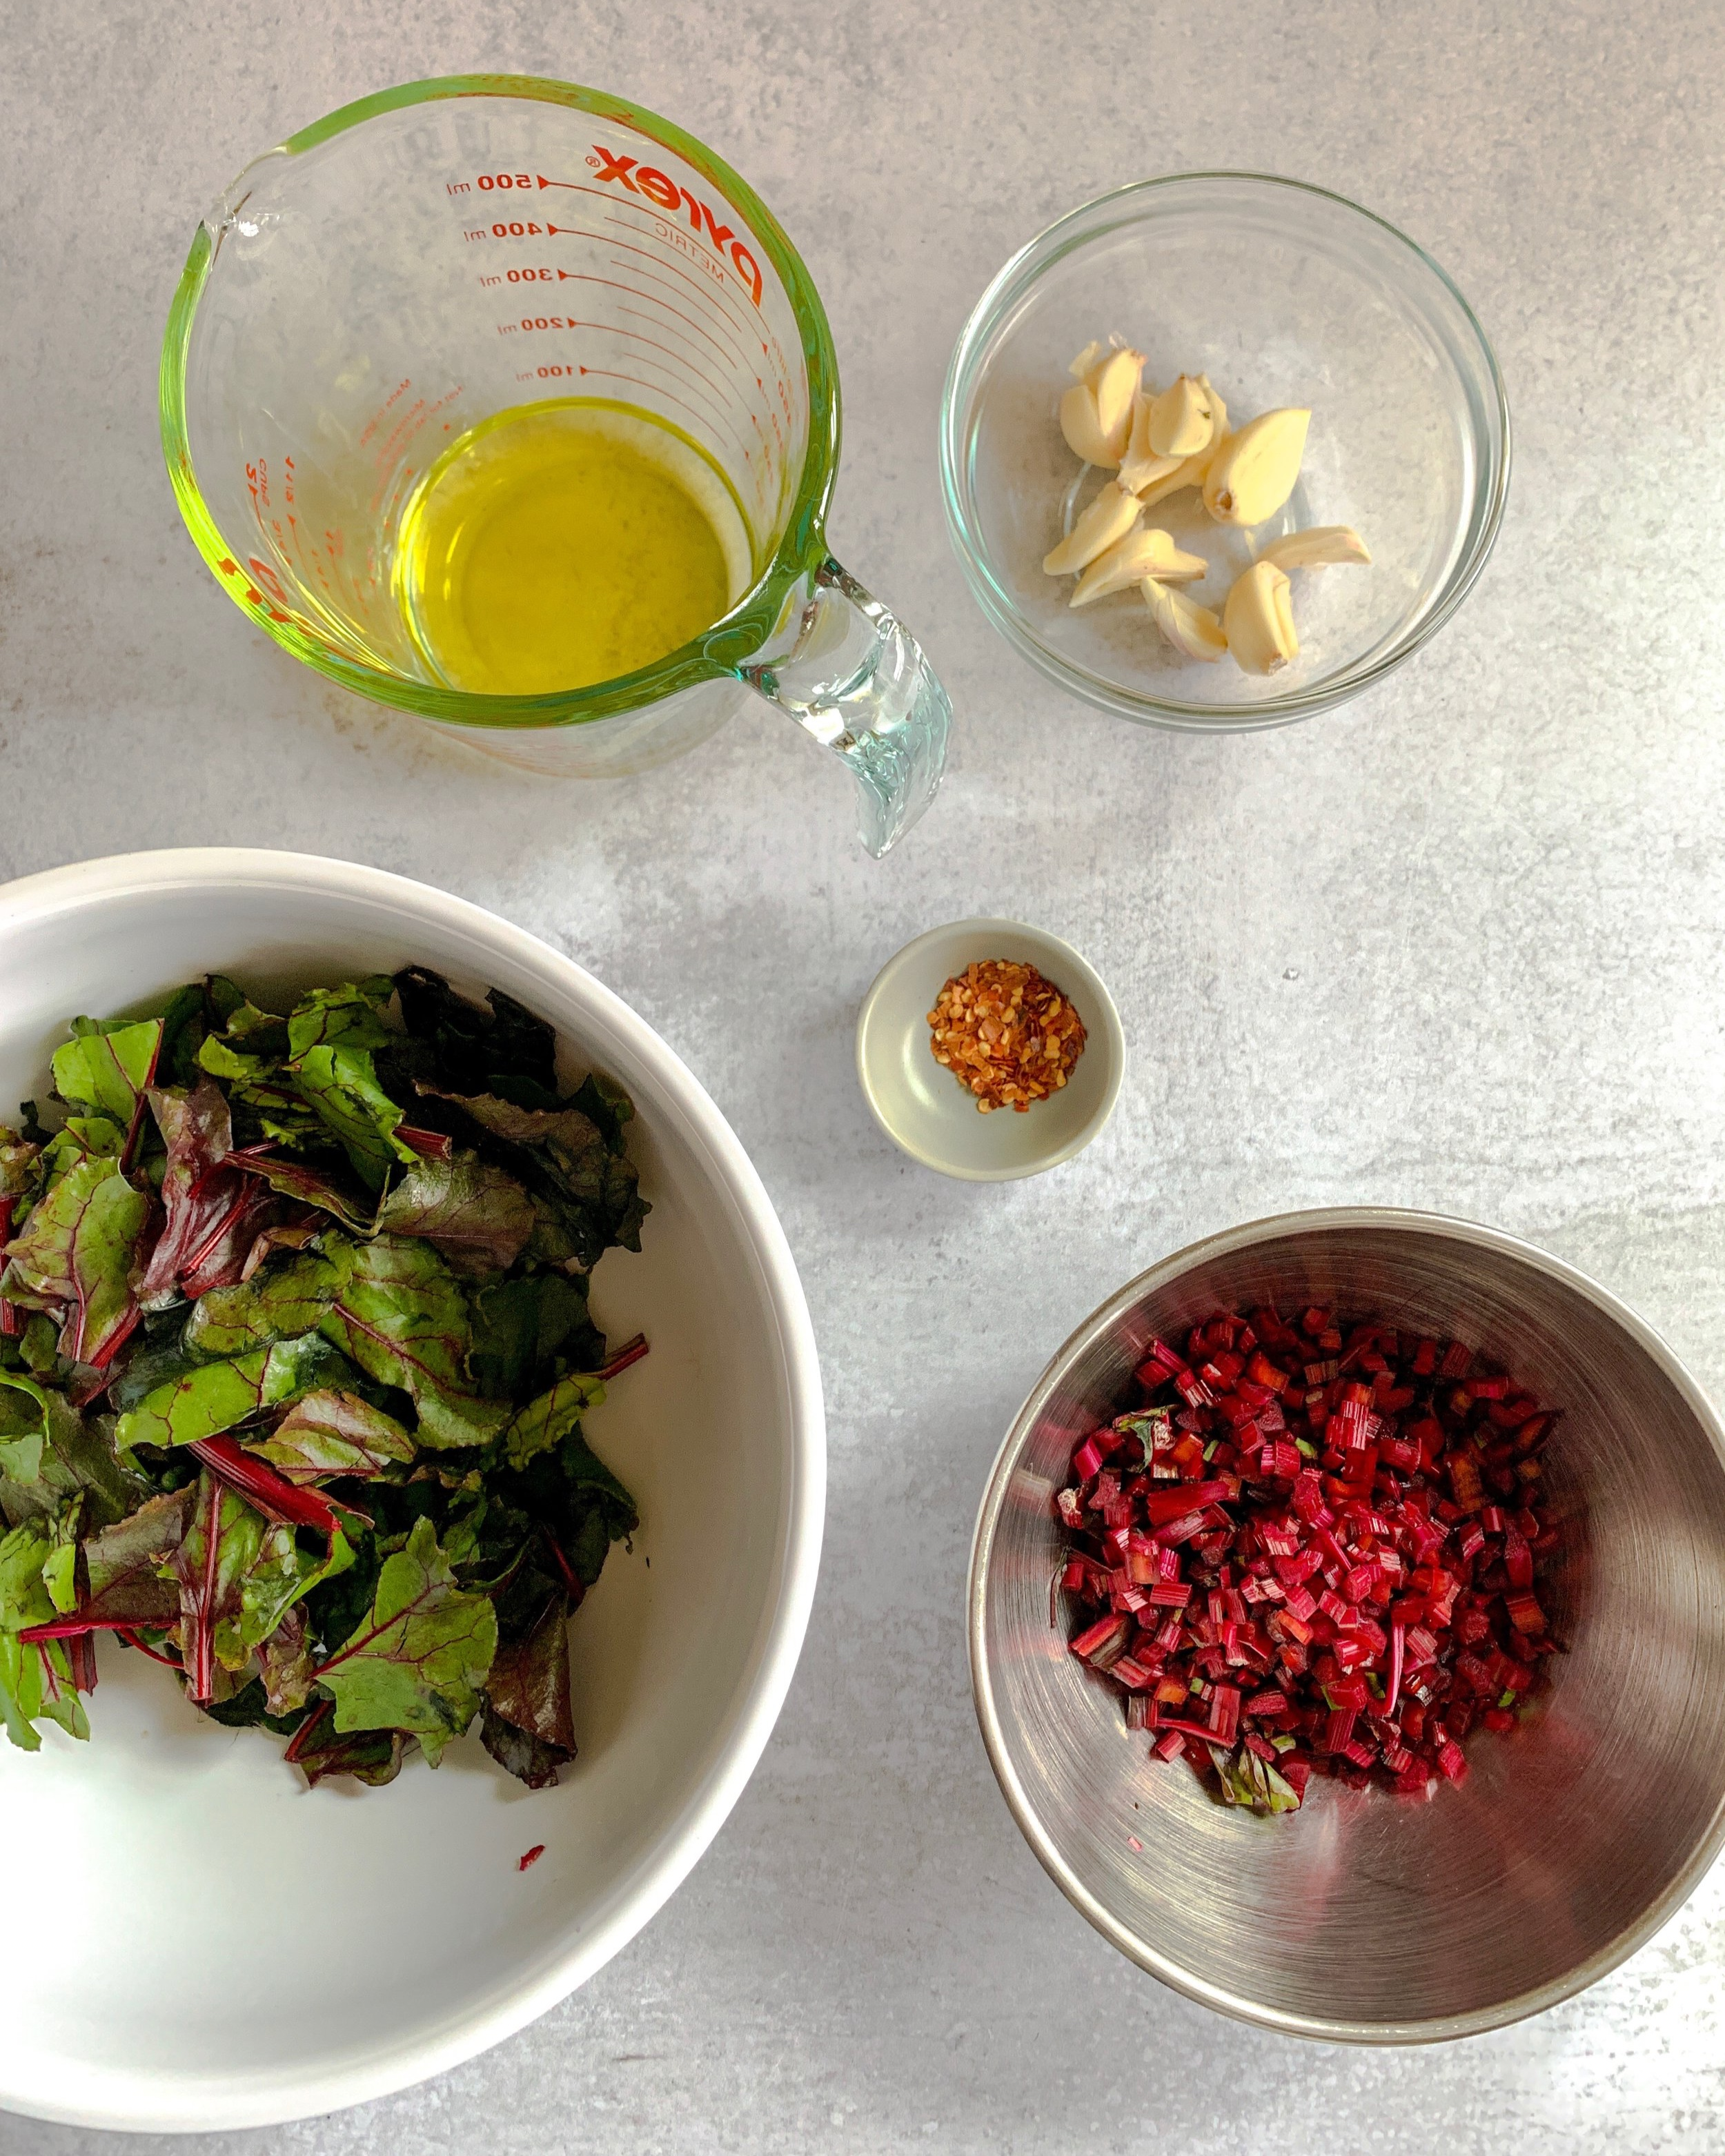 Ingredients for Spicy Sautéed Greens